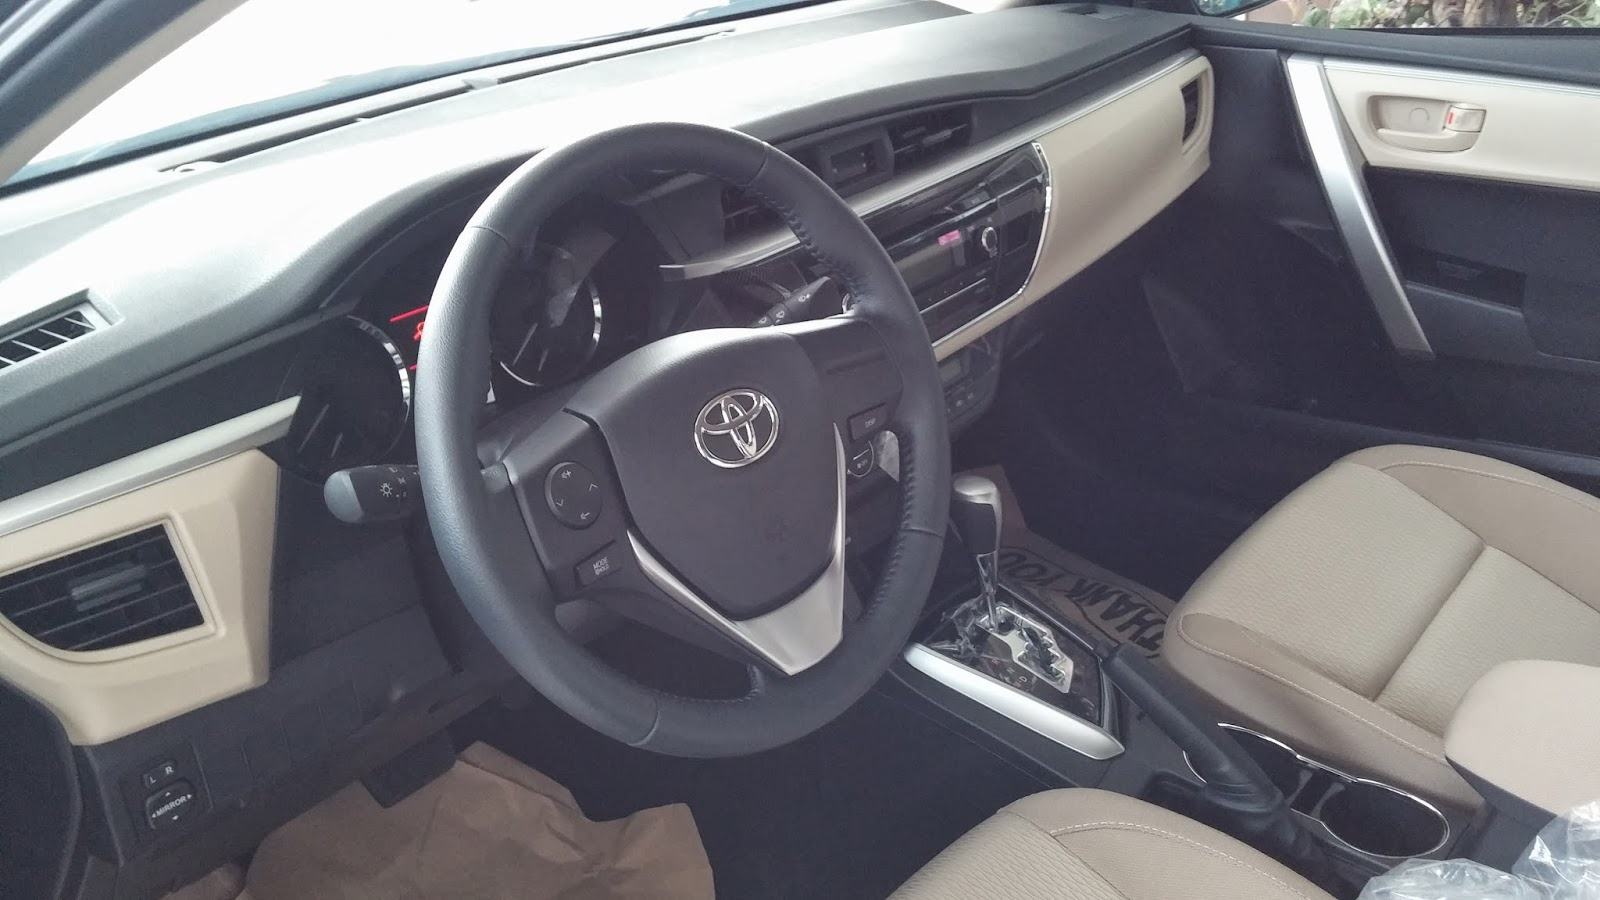 brand new toyota altis for sale philippines review agya trd 2018 vios 2014 mags autos post